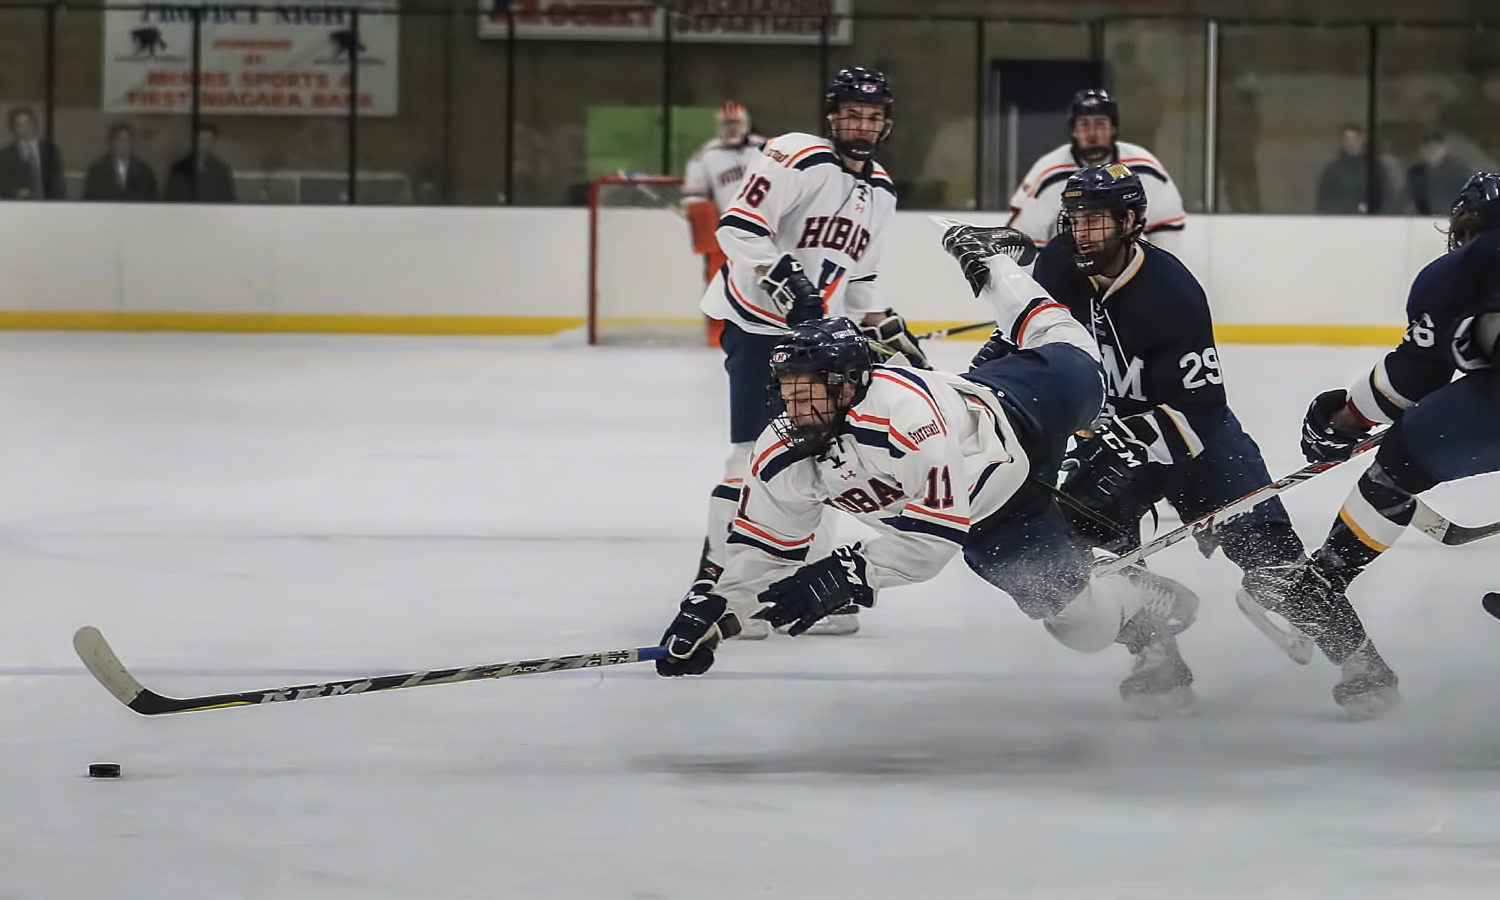 Cam Shaheen '19 makes an acrobatic play in the neutral zone during Hobart's win against the University of Southern Maine.